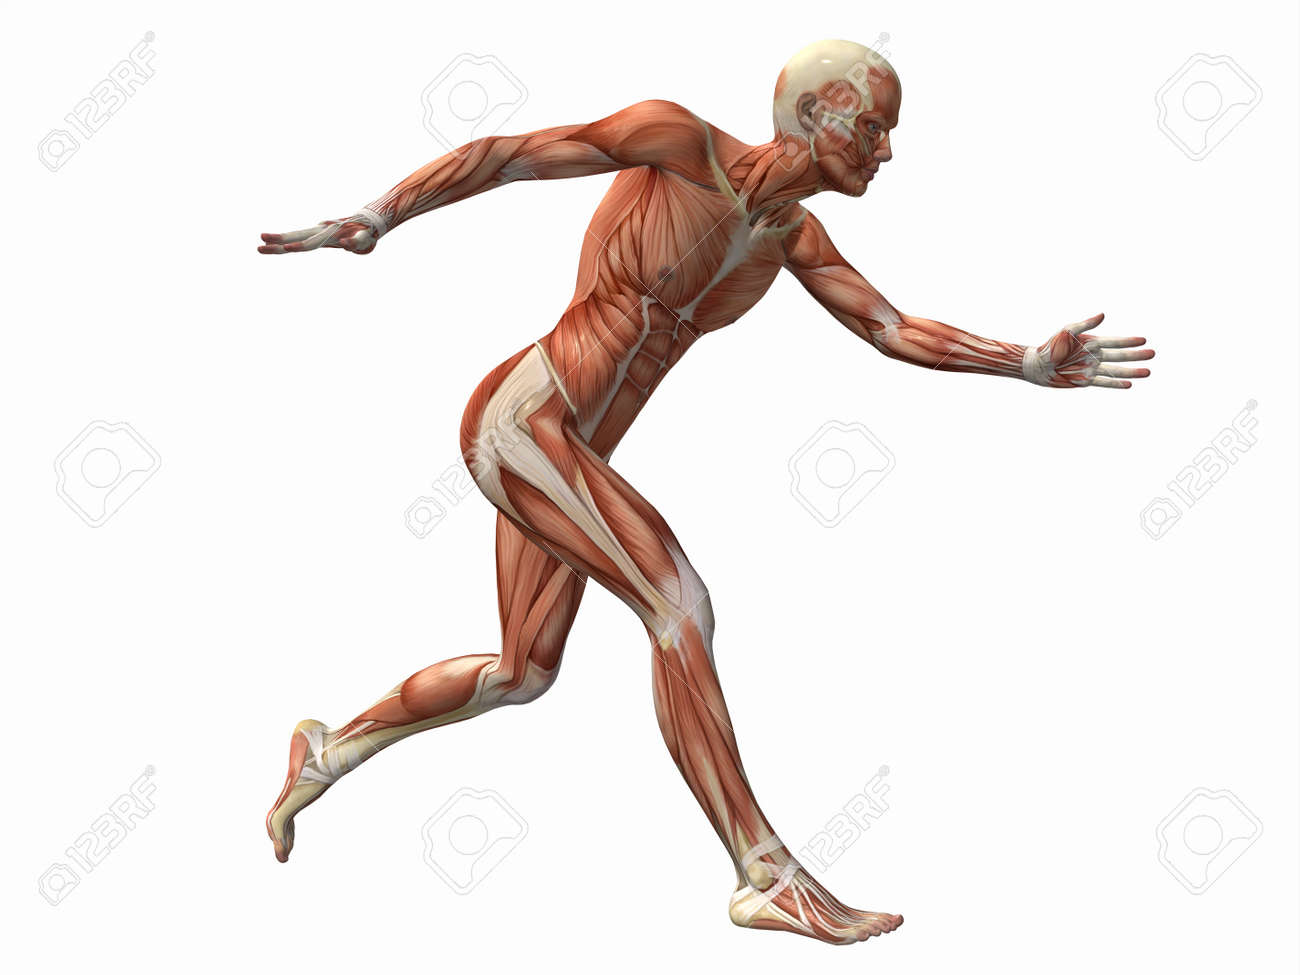 Muscle Man , Male Body Anatomy Stock Photo, Picture And Royalty Free ...